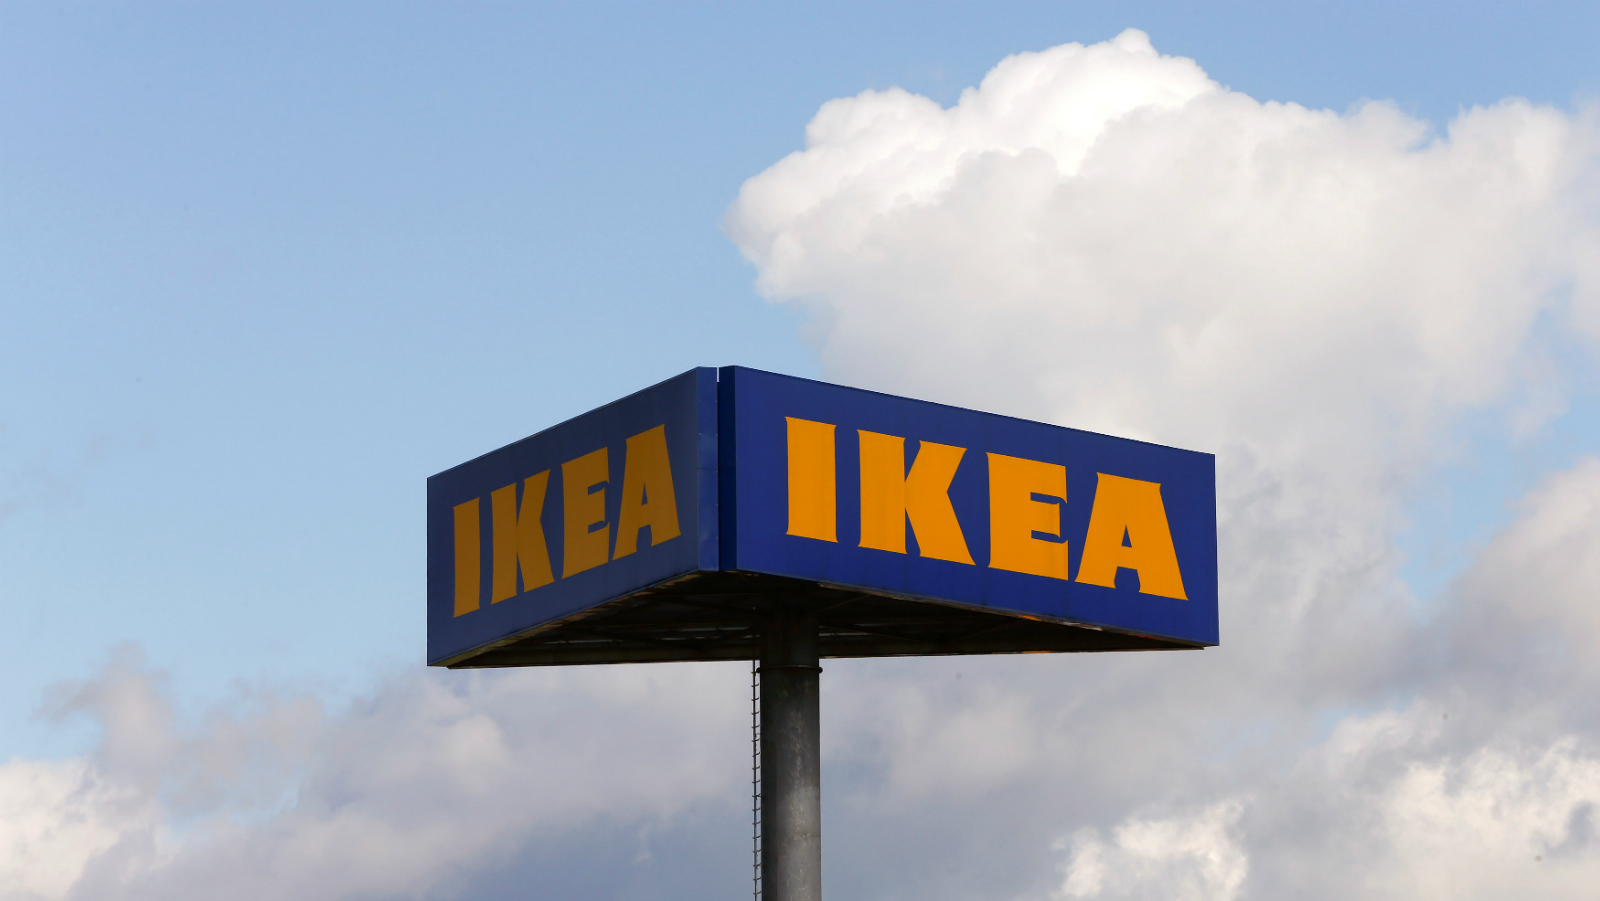 After Hyderabad, IKEA lines up big-bang Mumbai launch — Quartz India